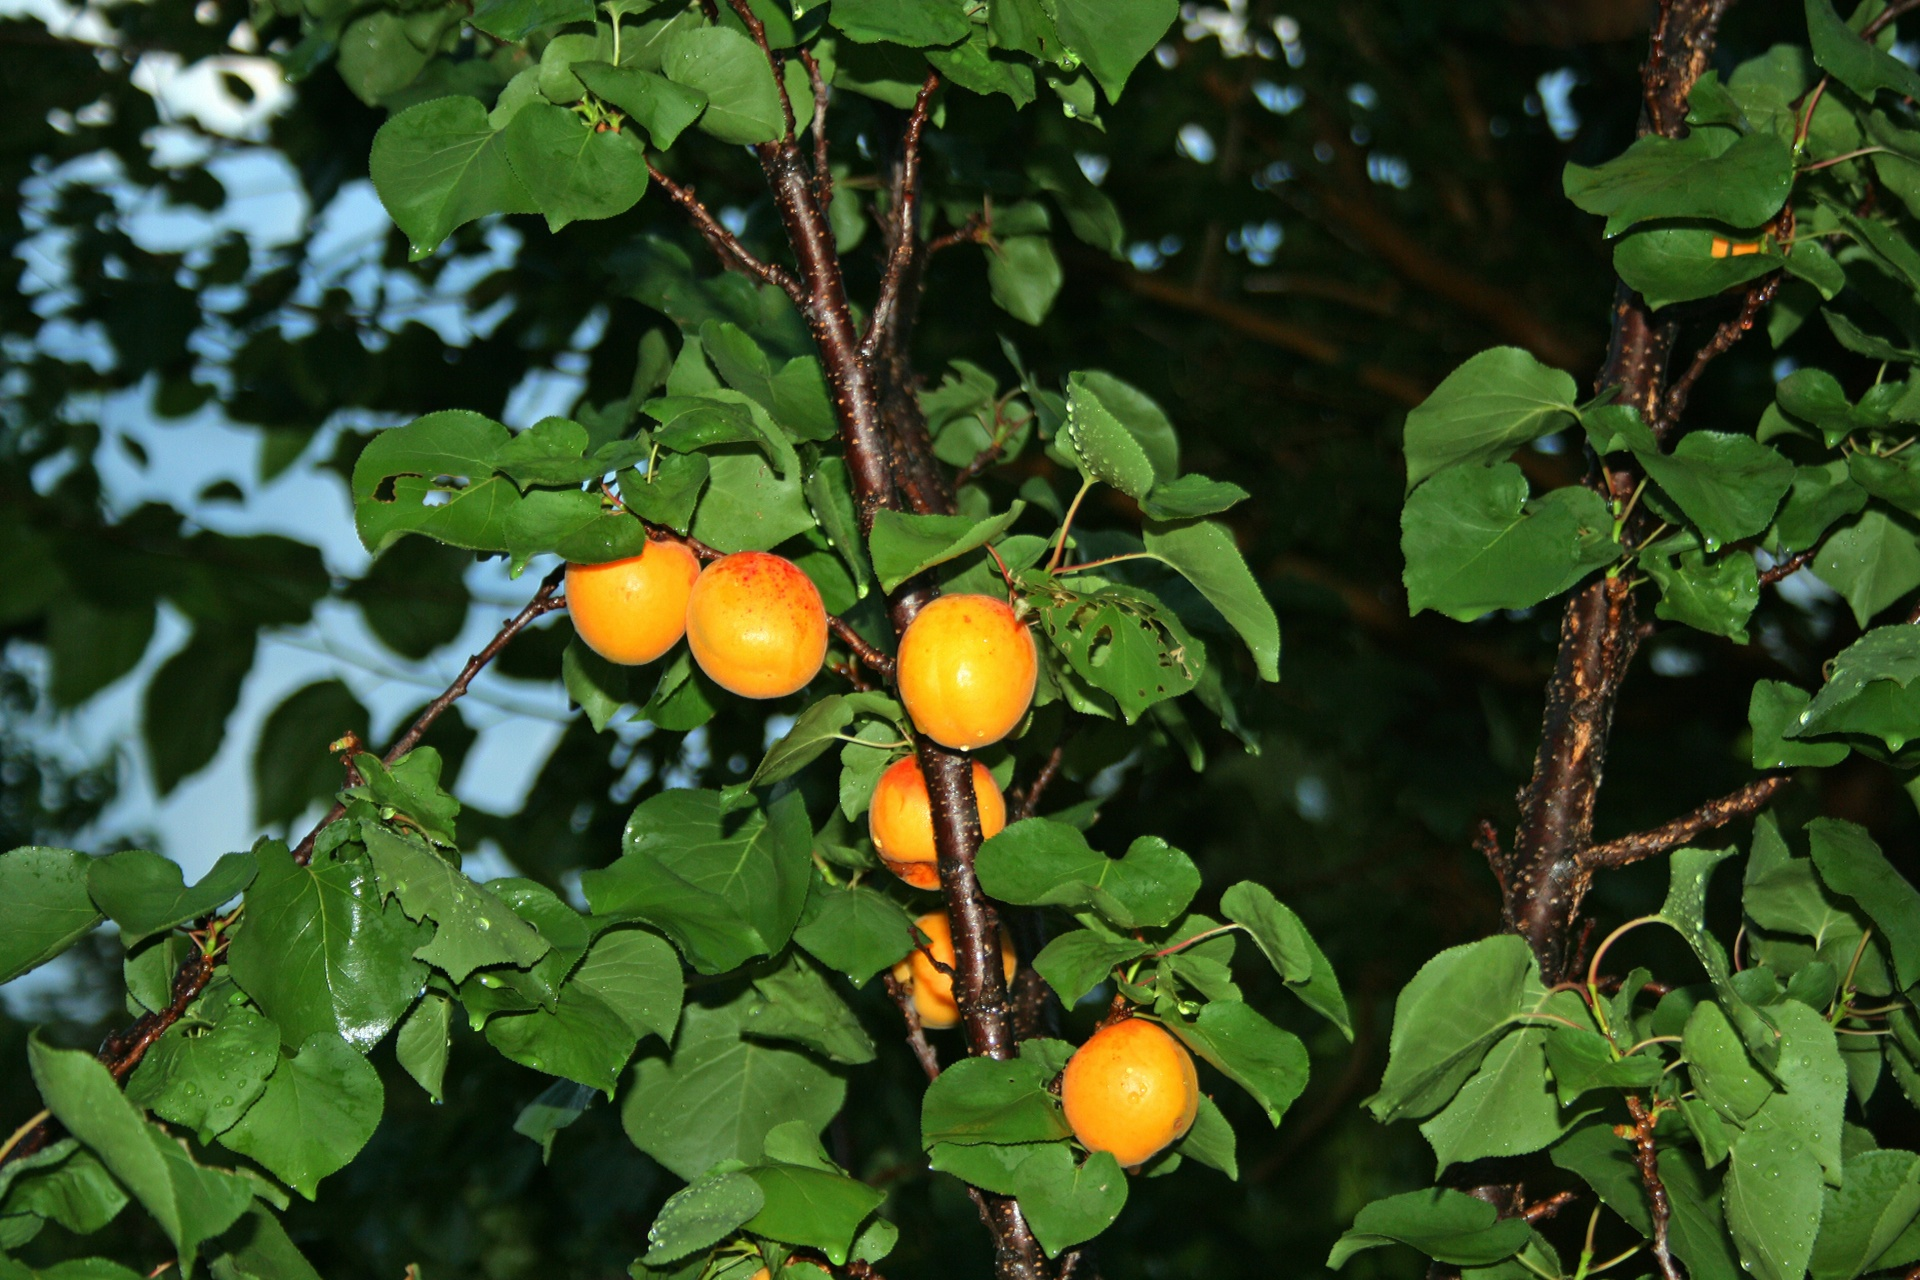 Apricots - Moorpark • Harcot • White UmeGoldkist • Blenheim• Puget GoldPink Ume • Star-kar-parehWenatchee • Early AutumnHarglow• Tomcot • Puget Gold